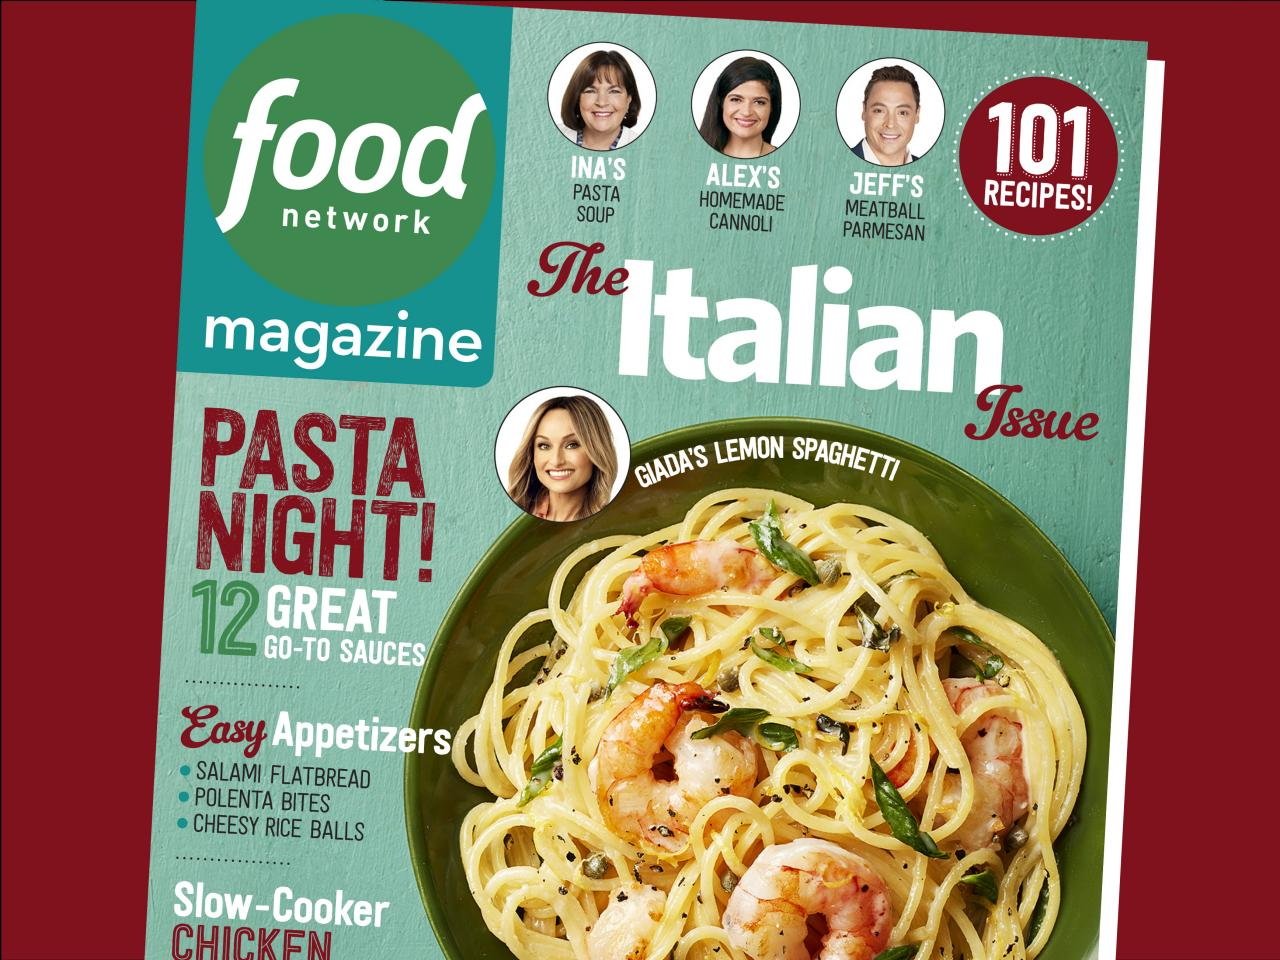 Food network magazine march 2017 recipe index food network food network magazine march 2017 recipe index forumfinder Images